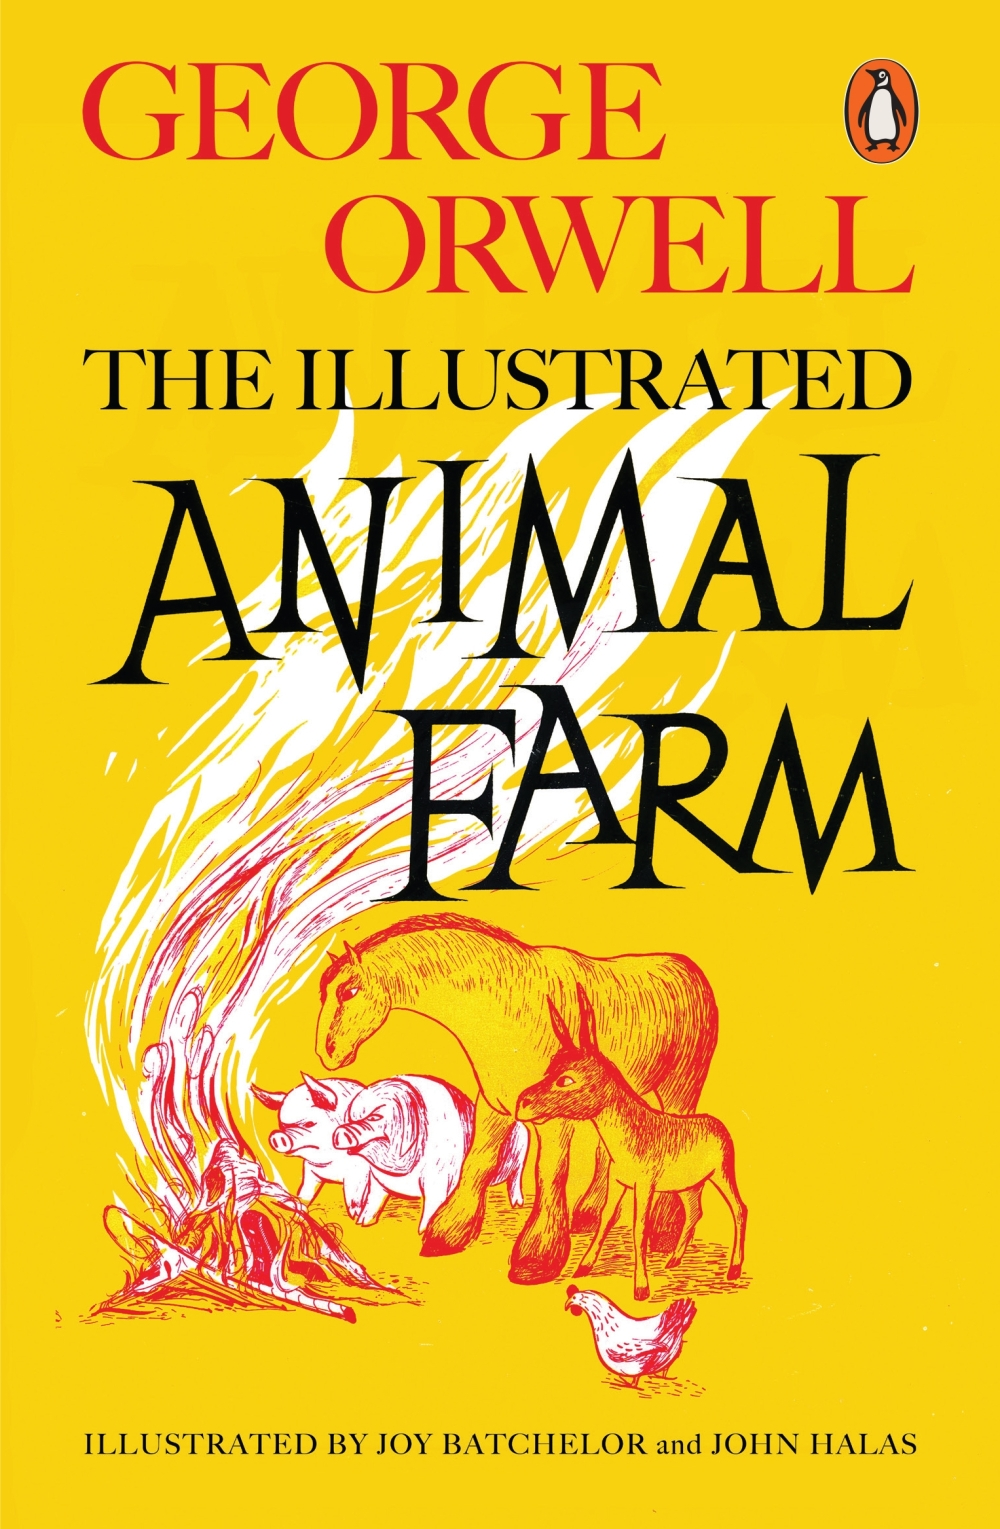 animal farm idealism is betrayed Posts about animal farm written by hawkinsart reflective art journal search • a devastating satire of idealism betrayed by power and corruption.